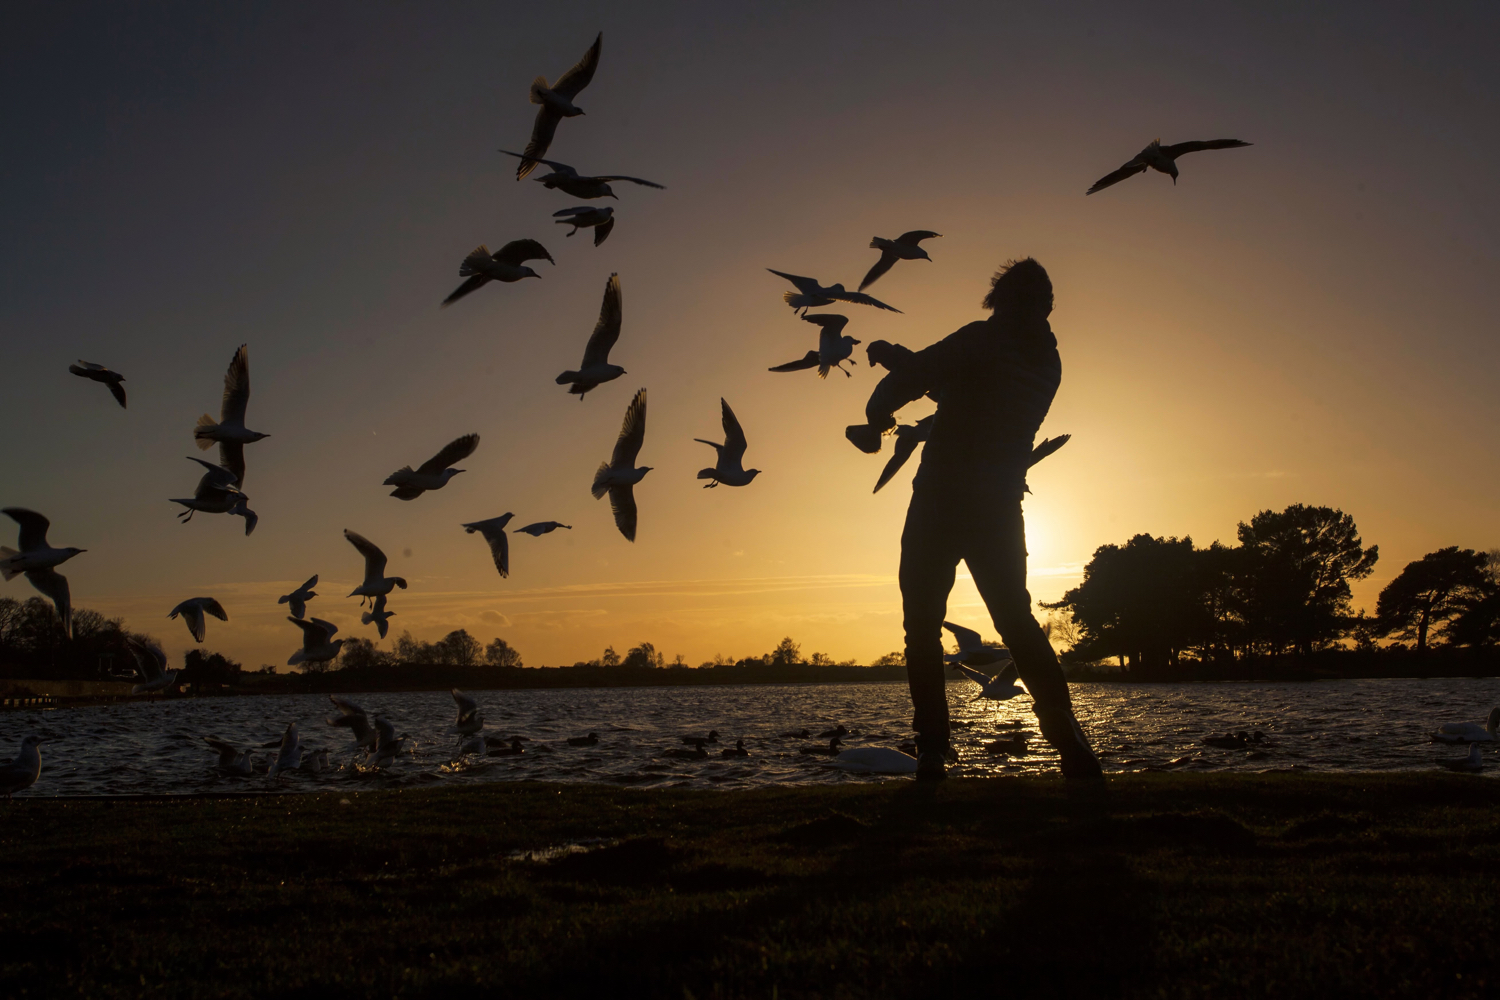 Image: This was an ideal place to take a silhouette. The person is silhouetted against the sky, and...